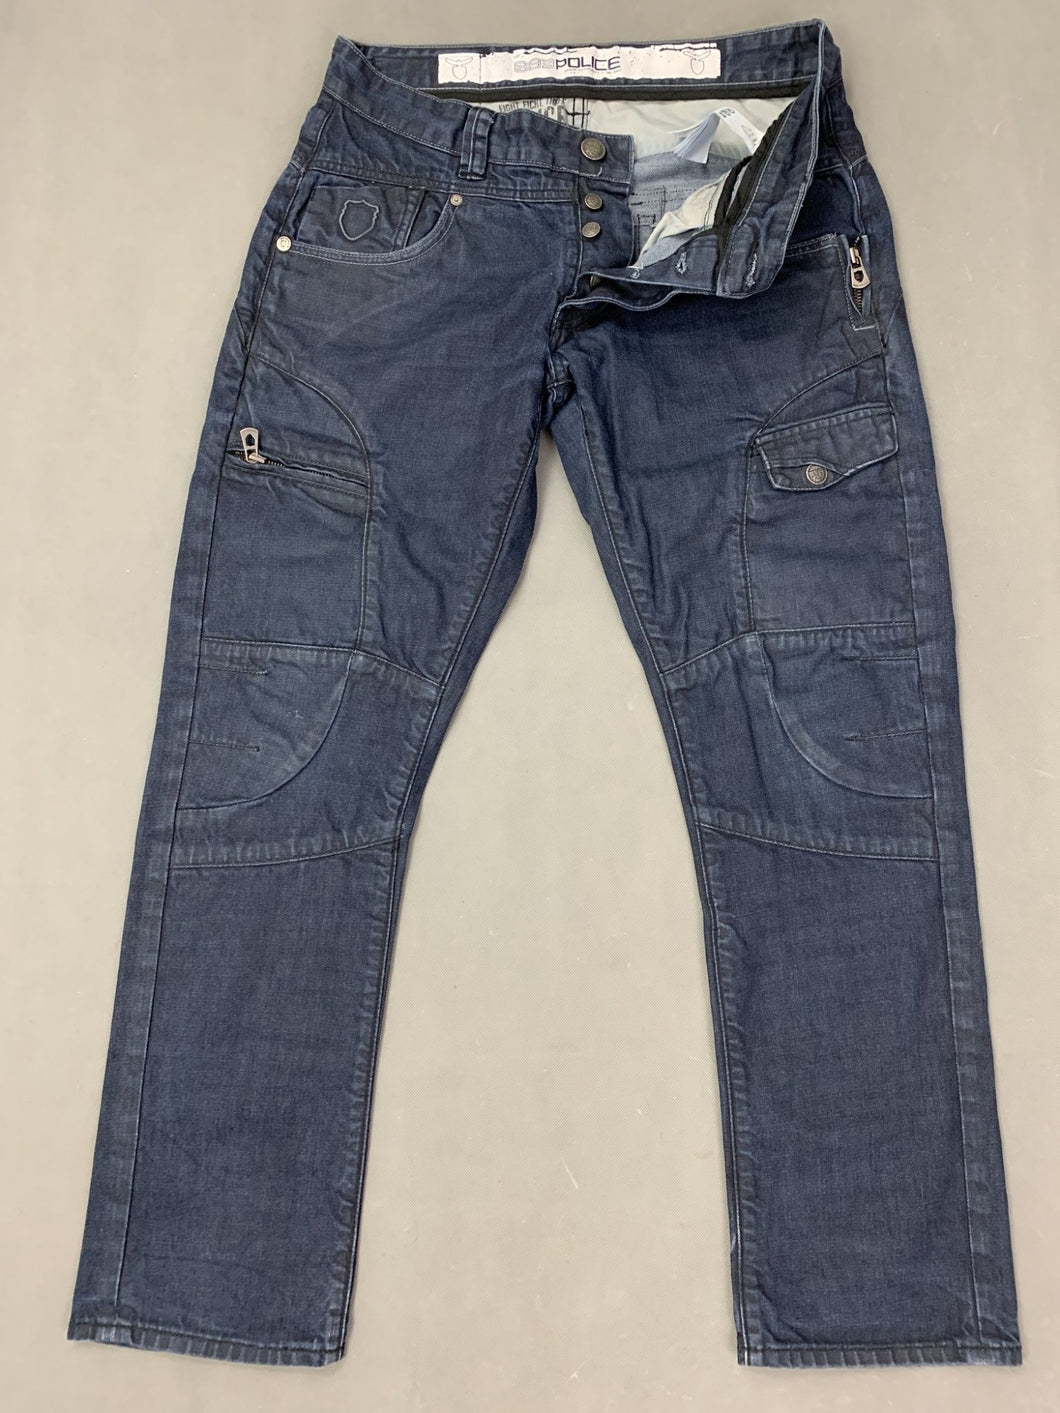 883 POLICE Mens HAVANA Blue Denim Regular Fit JEANS Size Waist 32